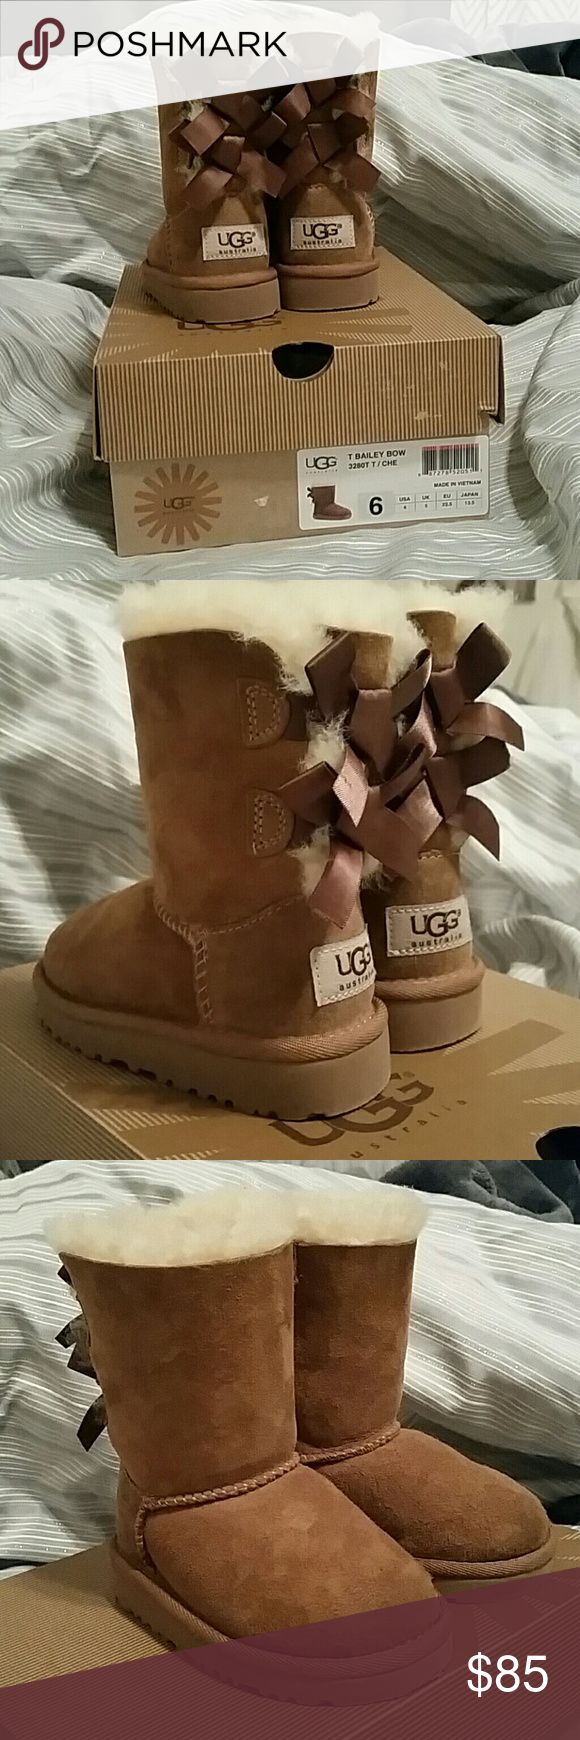 UGG girls Bailey Bow boots Size 6 Bailey Bow UGG boots. Super trendy for your little one. Unfortunately winters aren't very cold in California so my little one has only worn them 2-3 times before she out grew them. UGG Shoes Boots